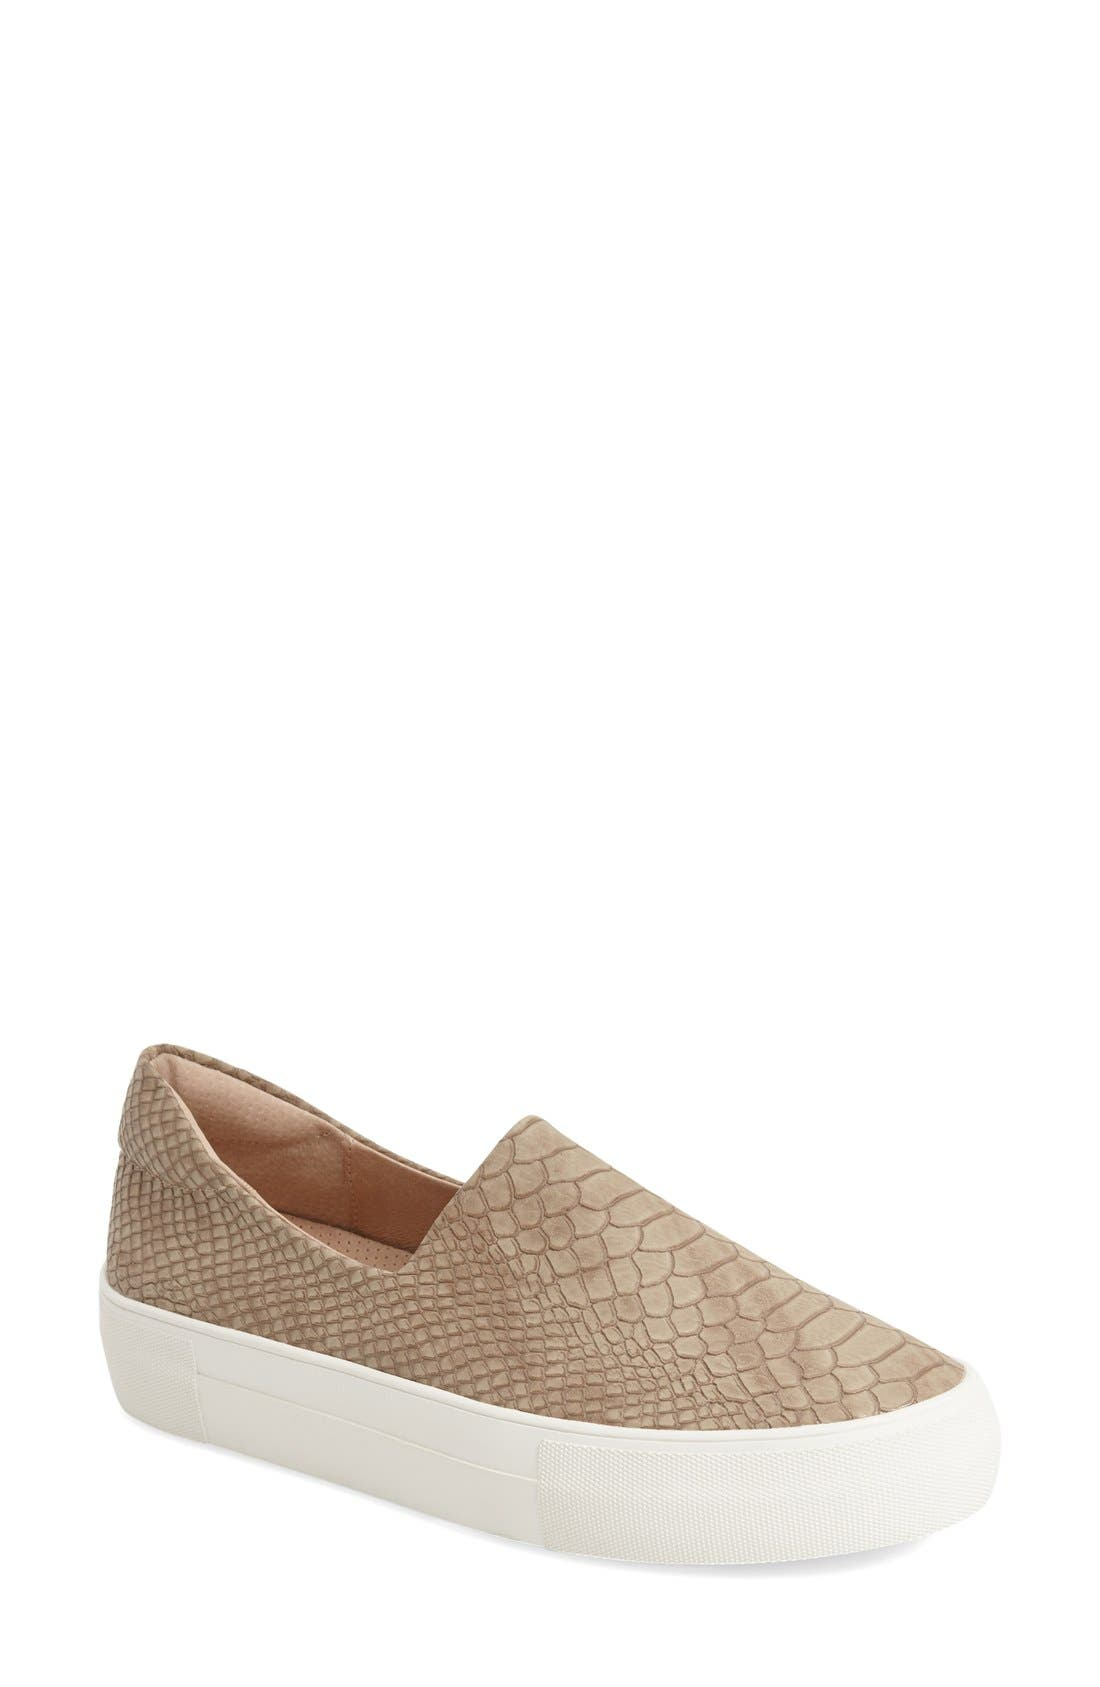 'Ariana' Platform Sneaker,                             Main thumbnail 1, color,                             Taupe Embossed Lux